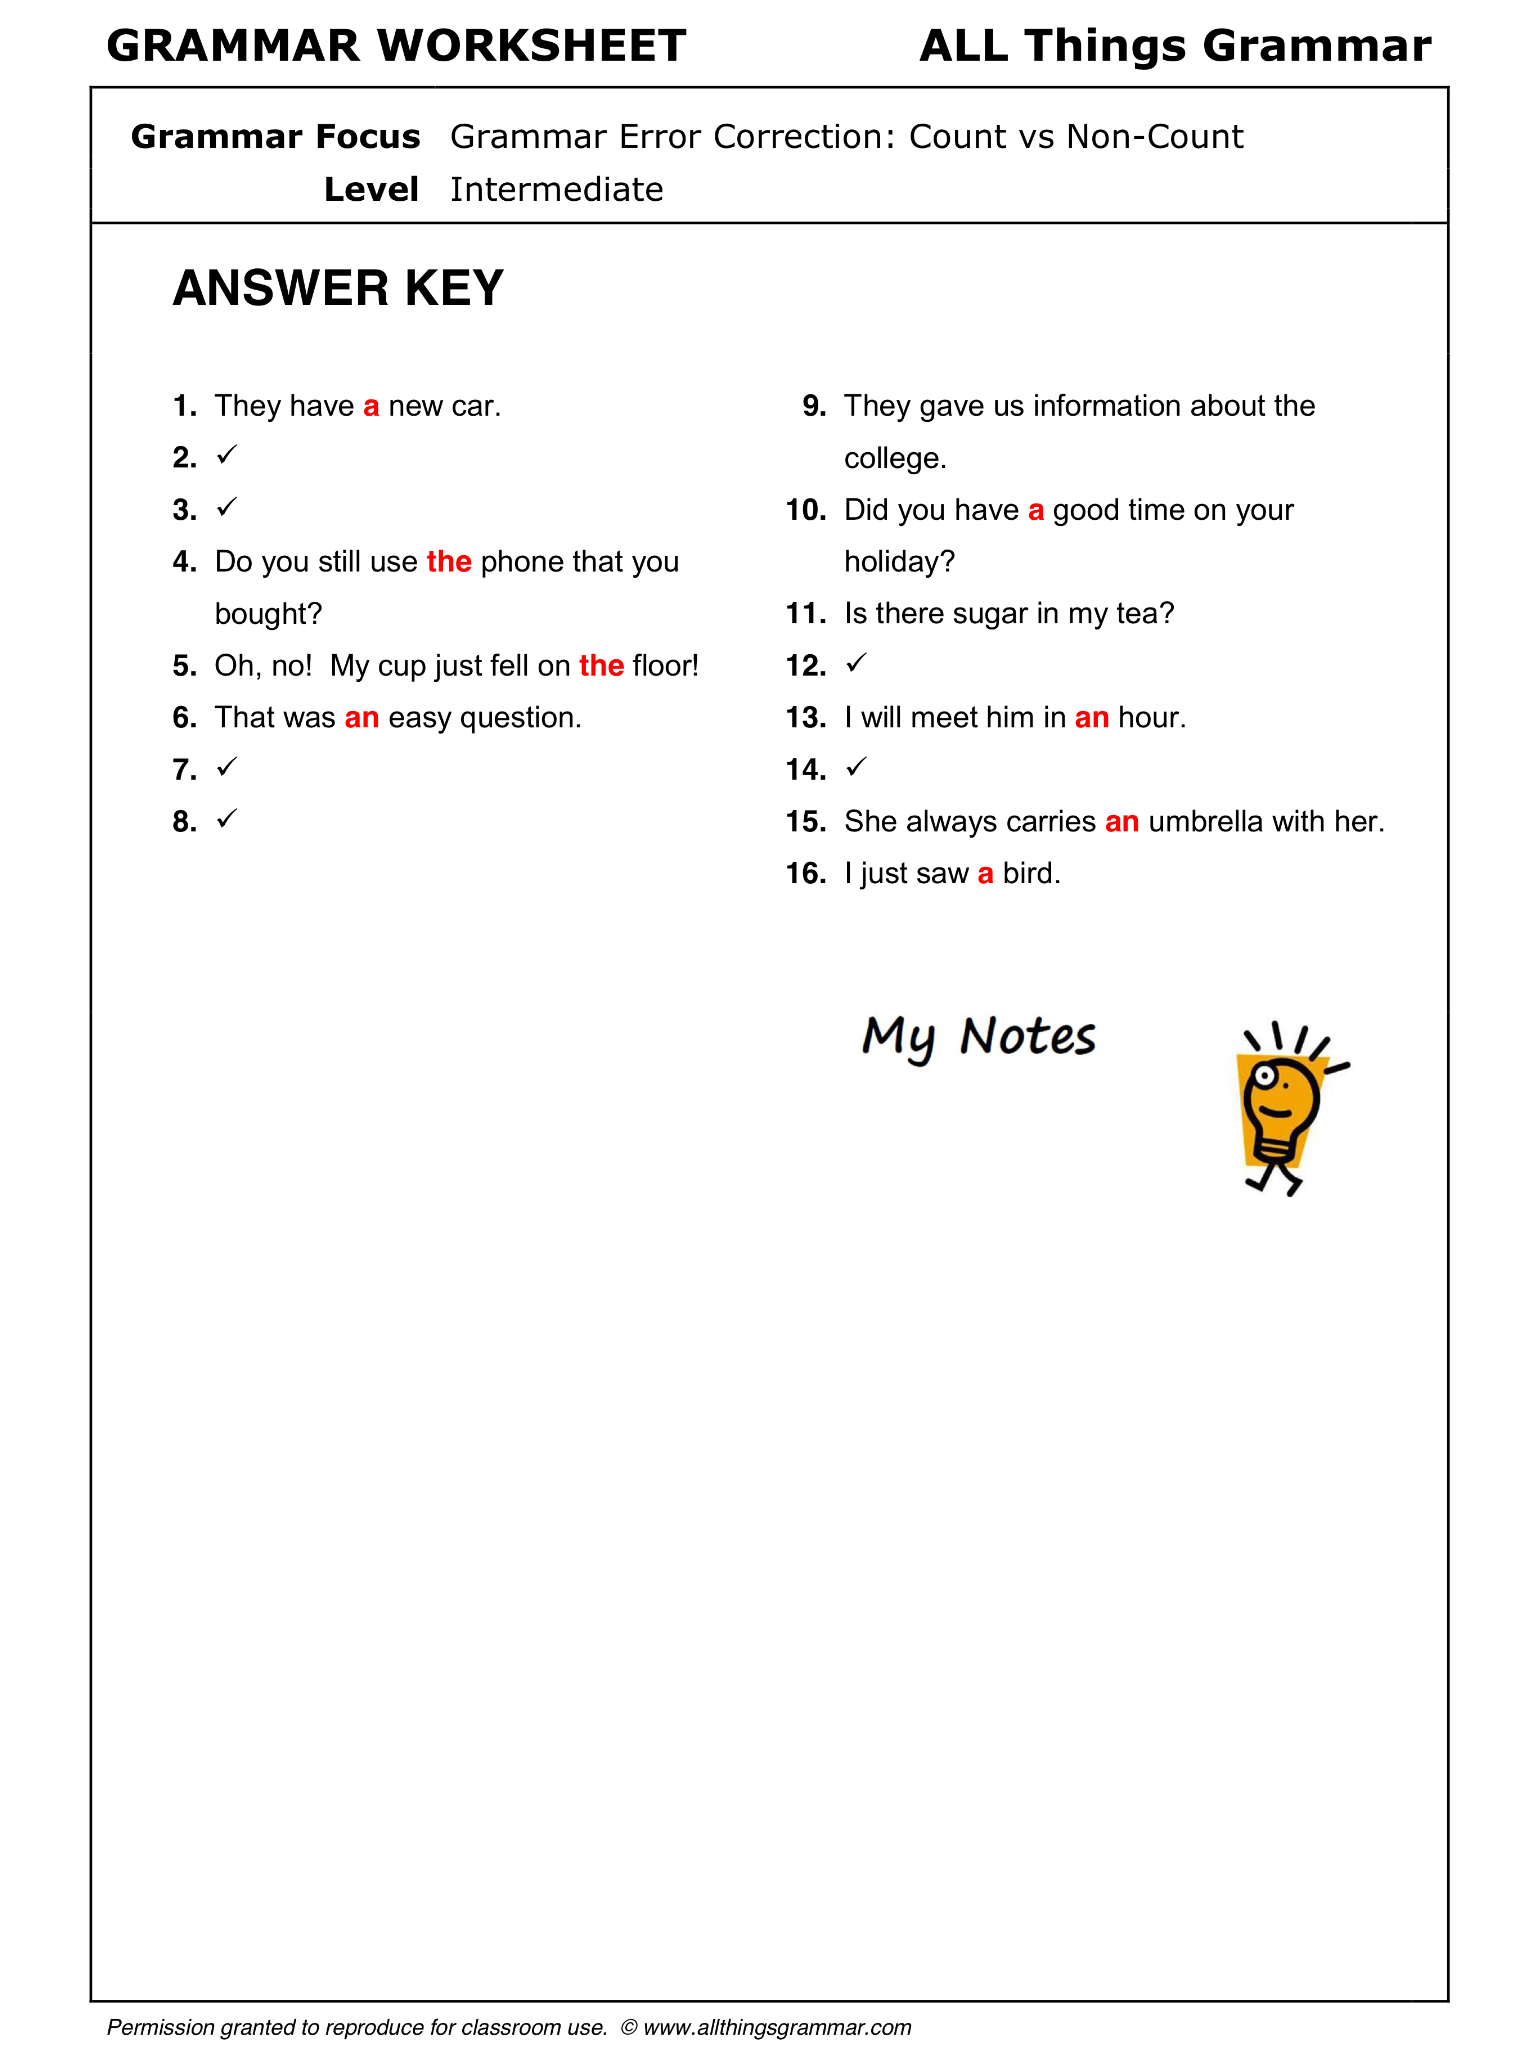 worksheet Count And Noncount Nouns Worksheet english grammar count and non nouns www allthingsgrammar com comcount